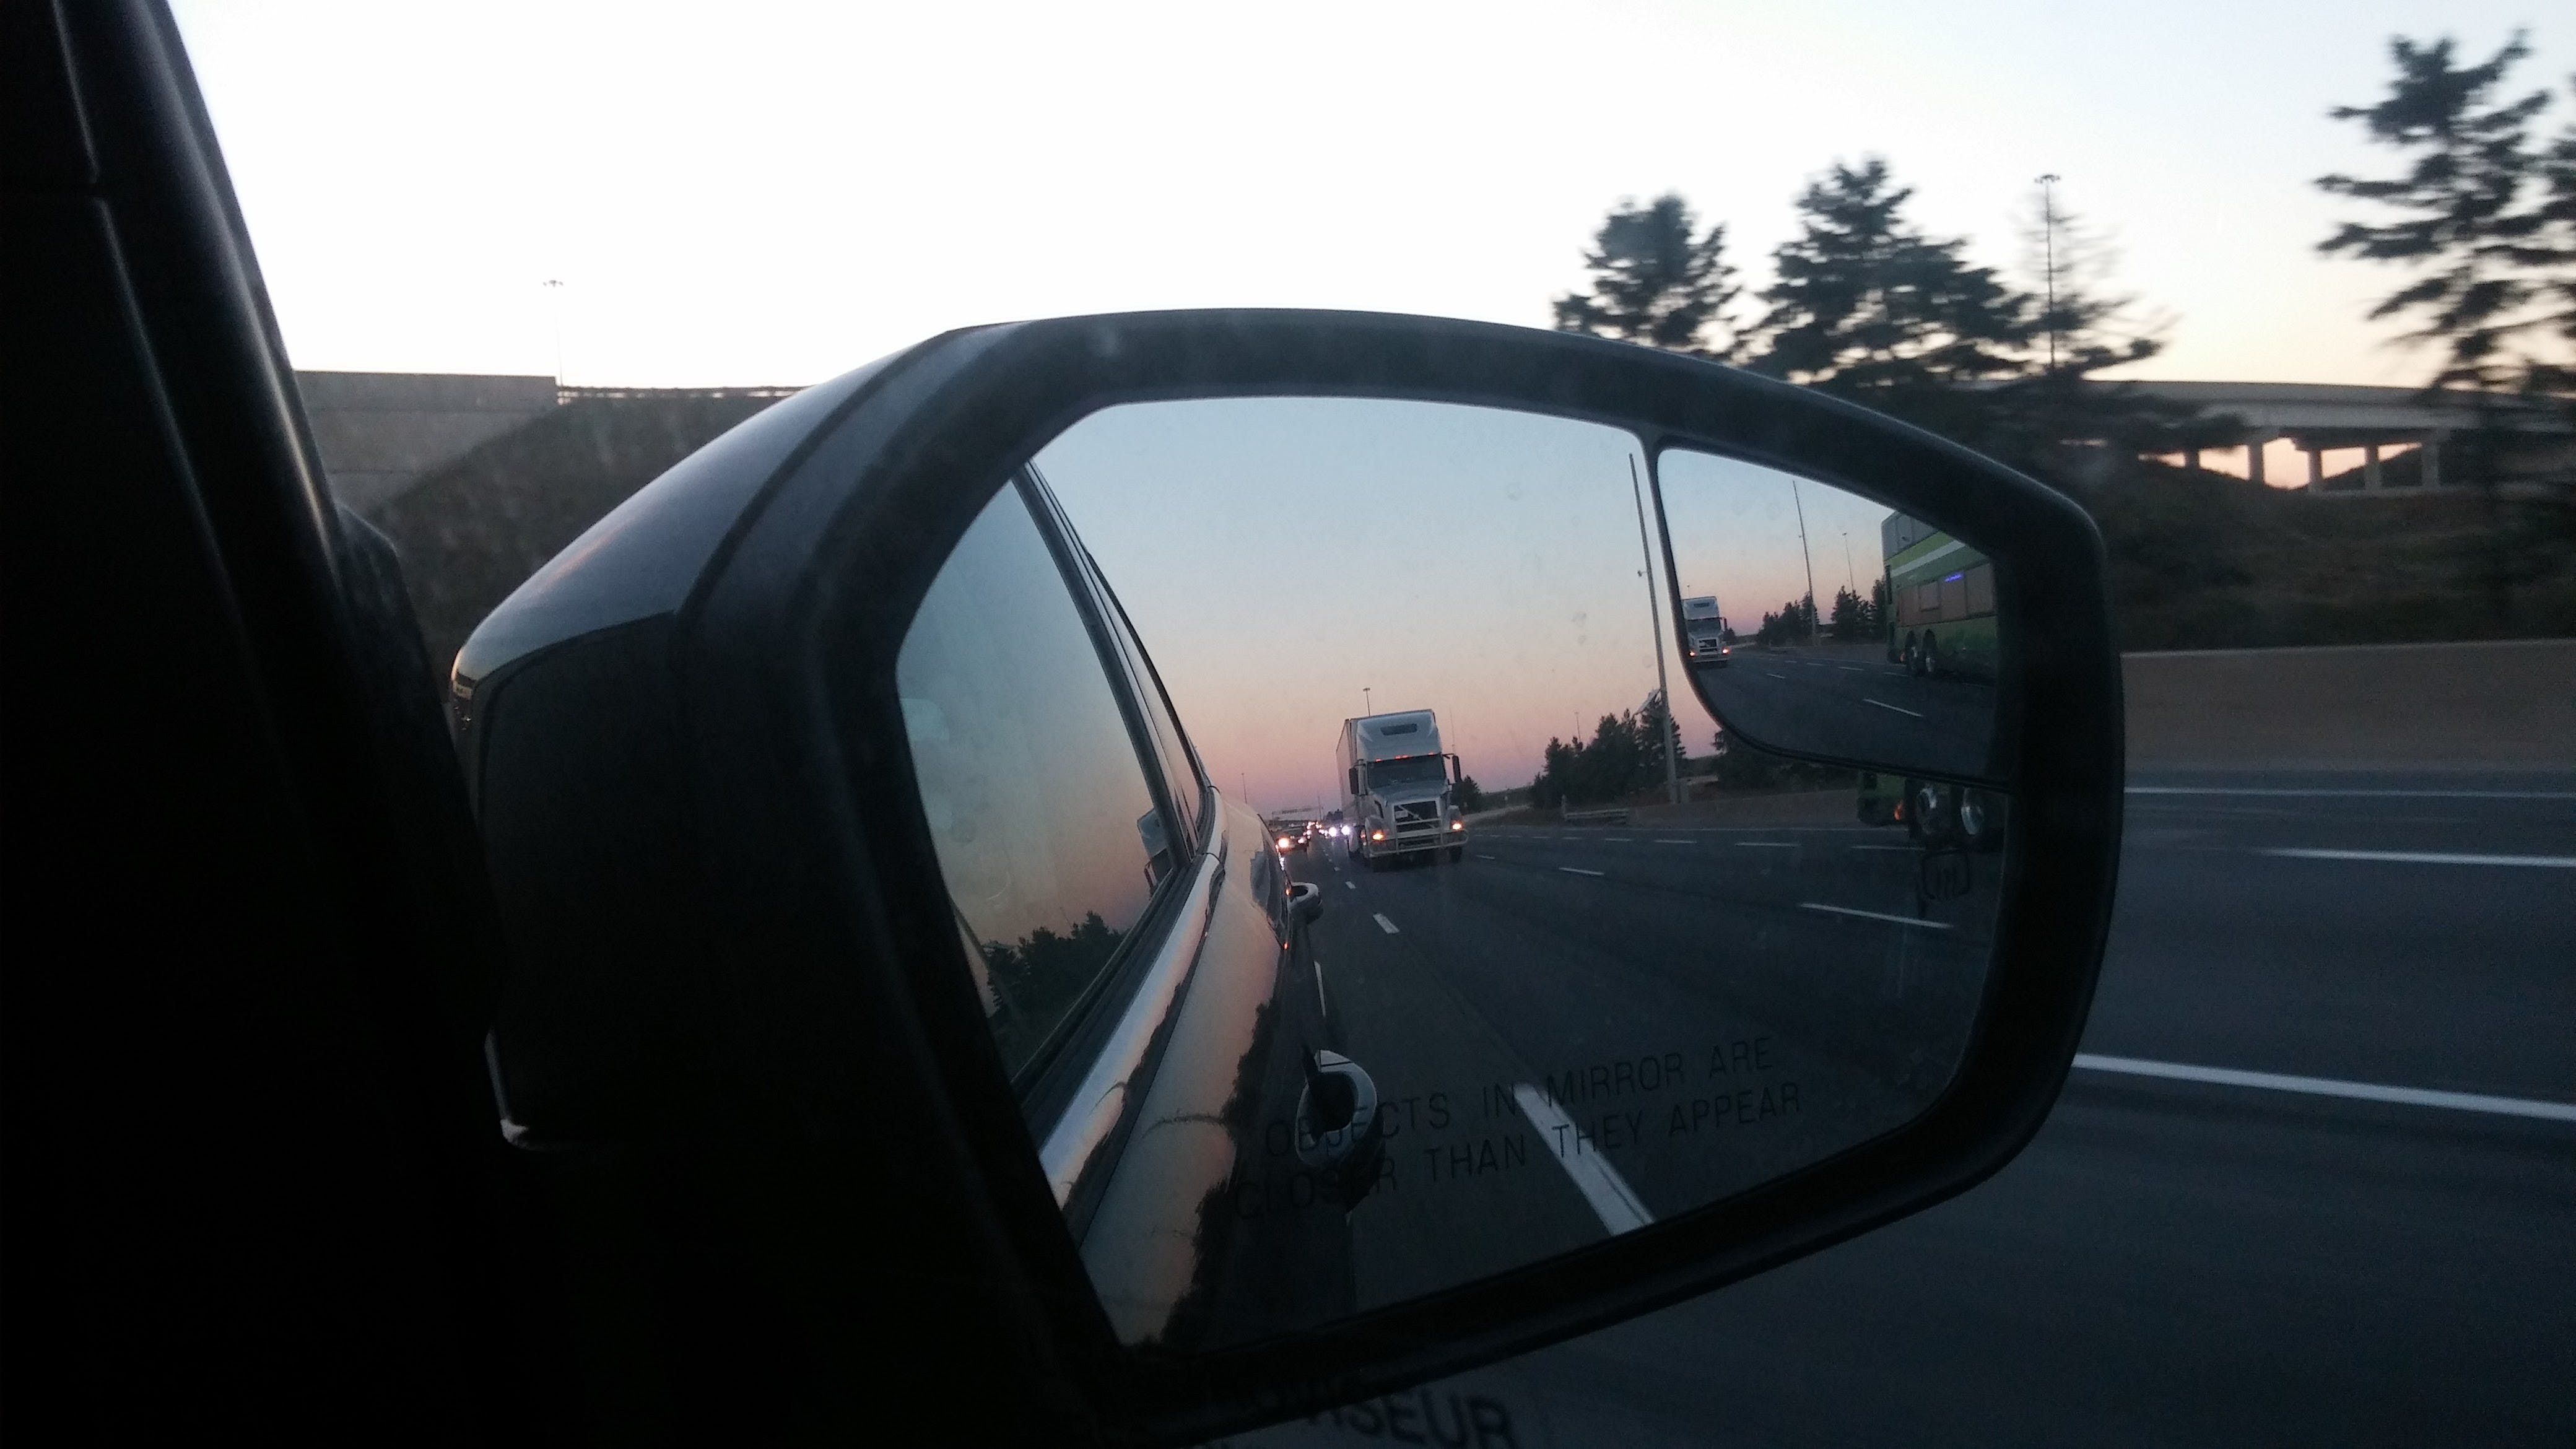 Free stock photo of highway, mirror, side mirror, truck